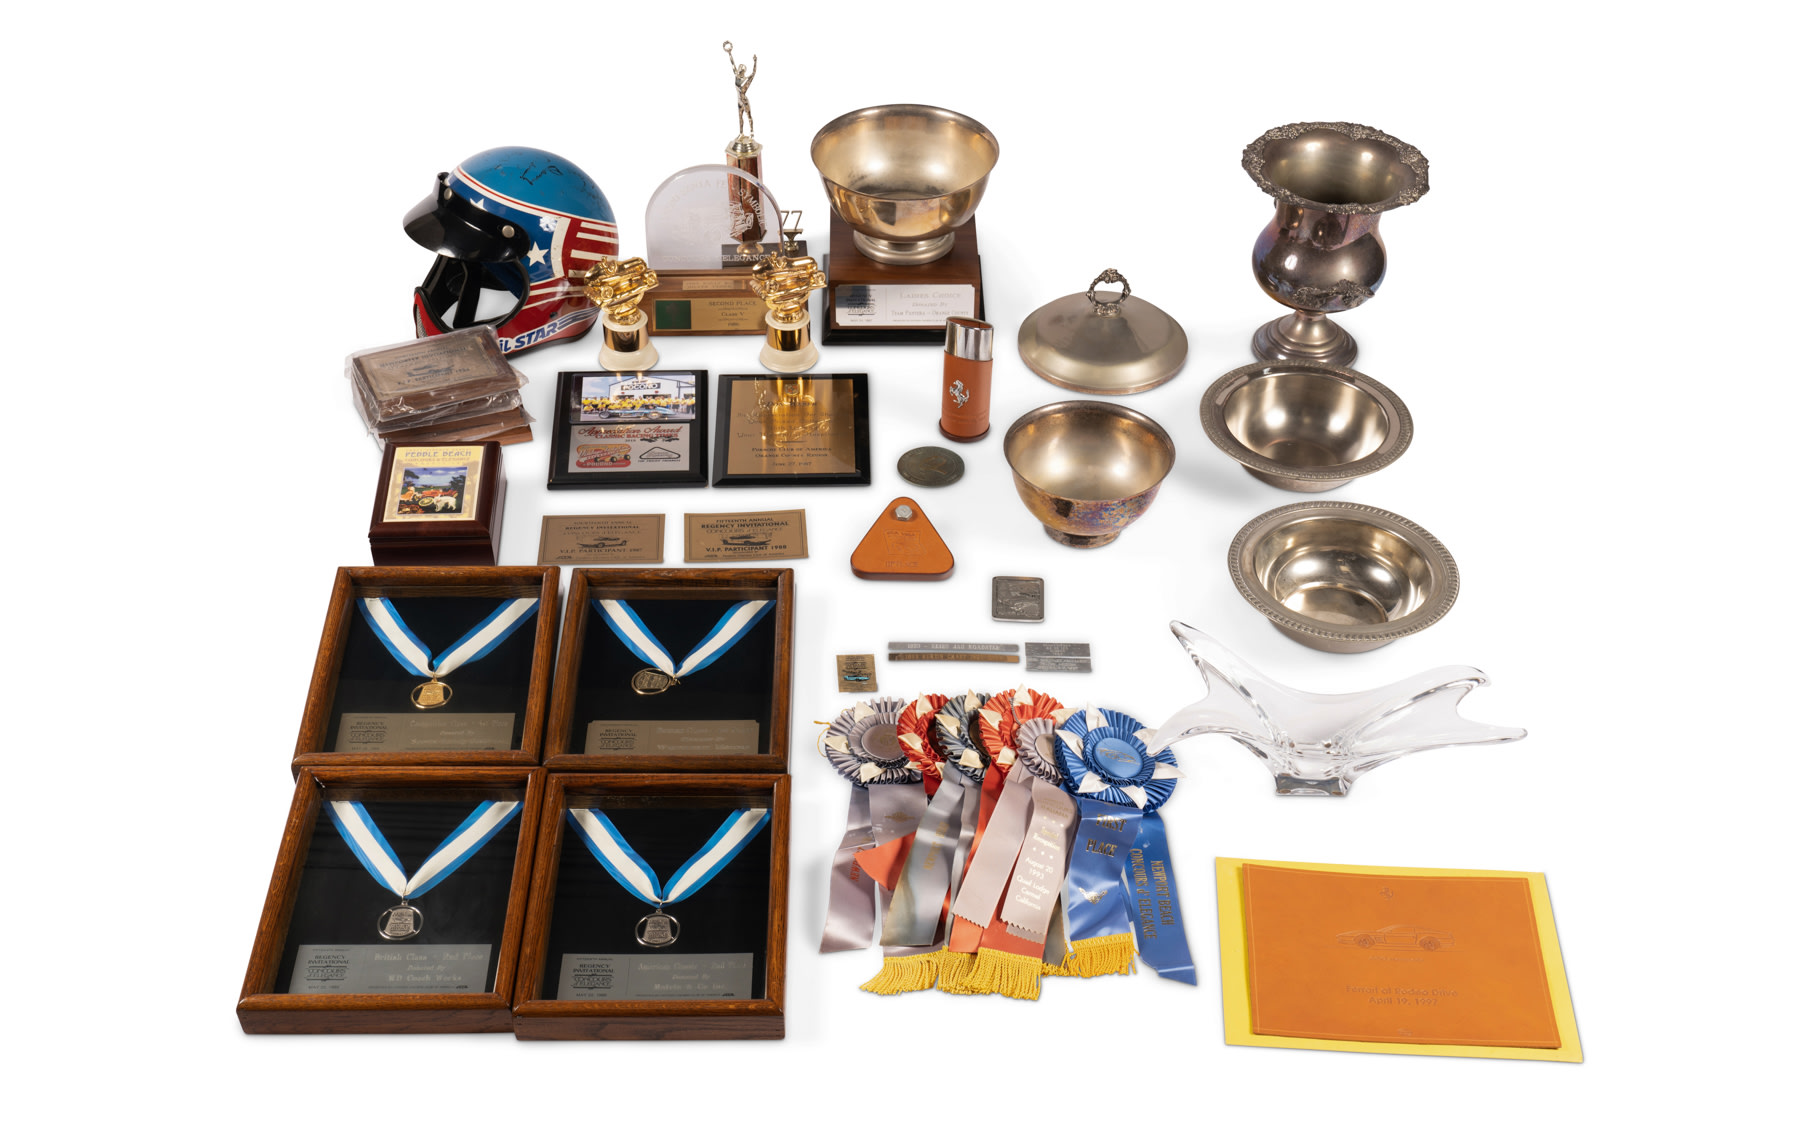 Assorted Awards and Trophies Including Helmet Signed by Phil Hill, Stirling Moss, and Others